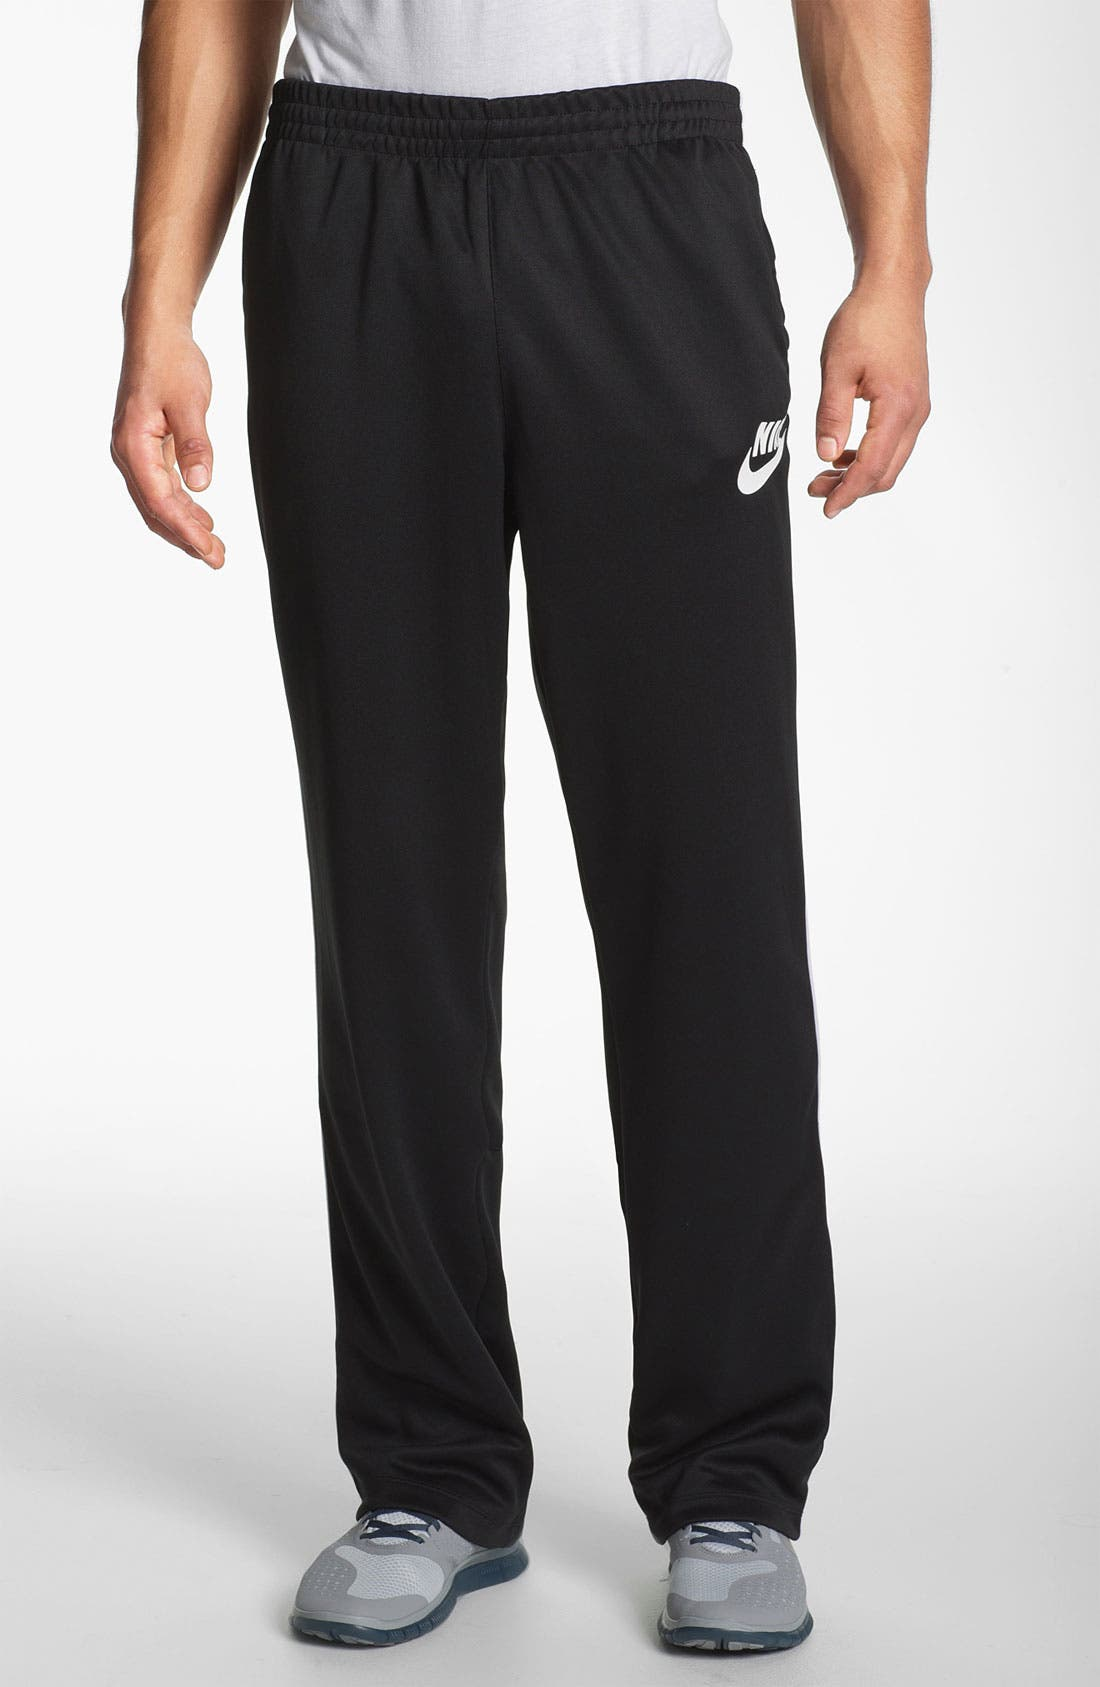 Alternate Image 1 Selected - Nike 'HBR' Track Pants